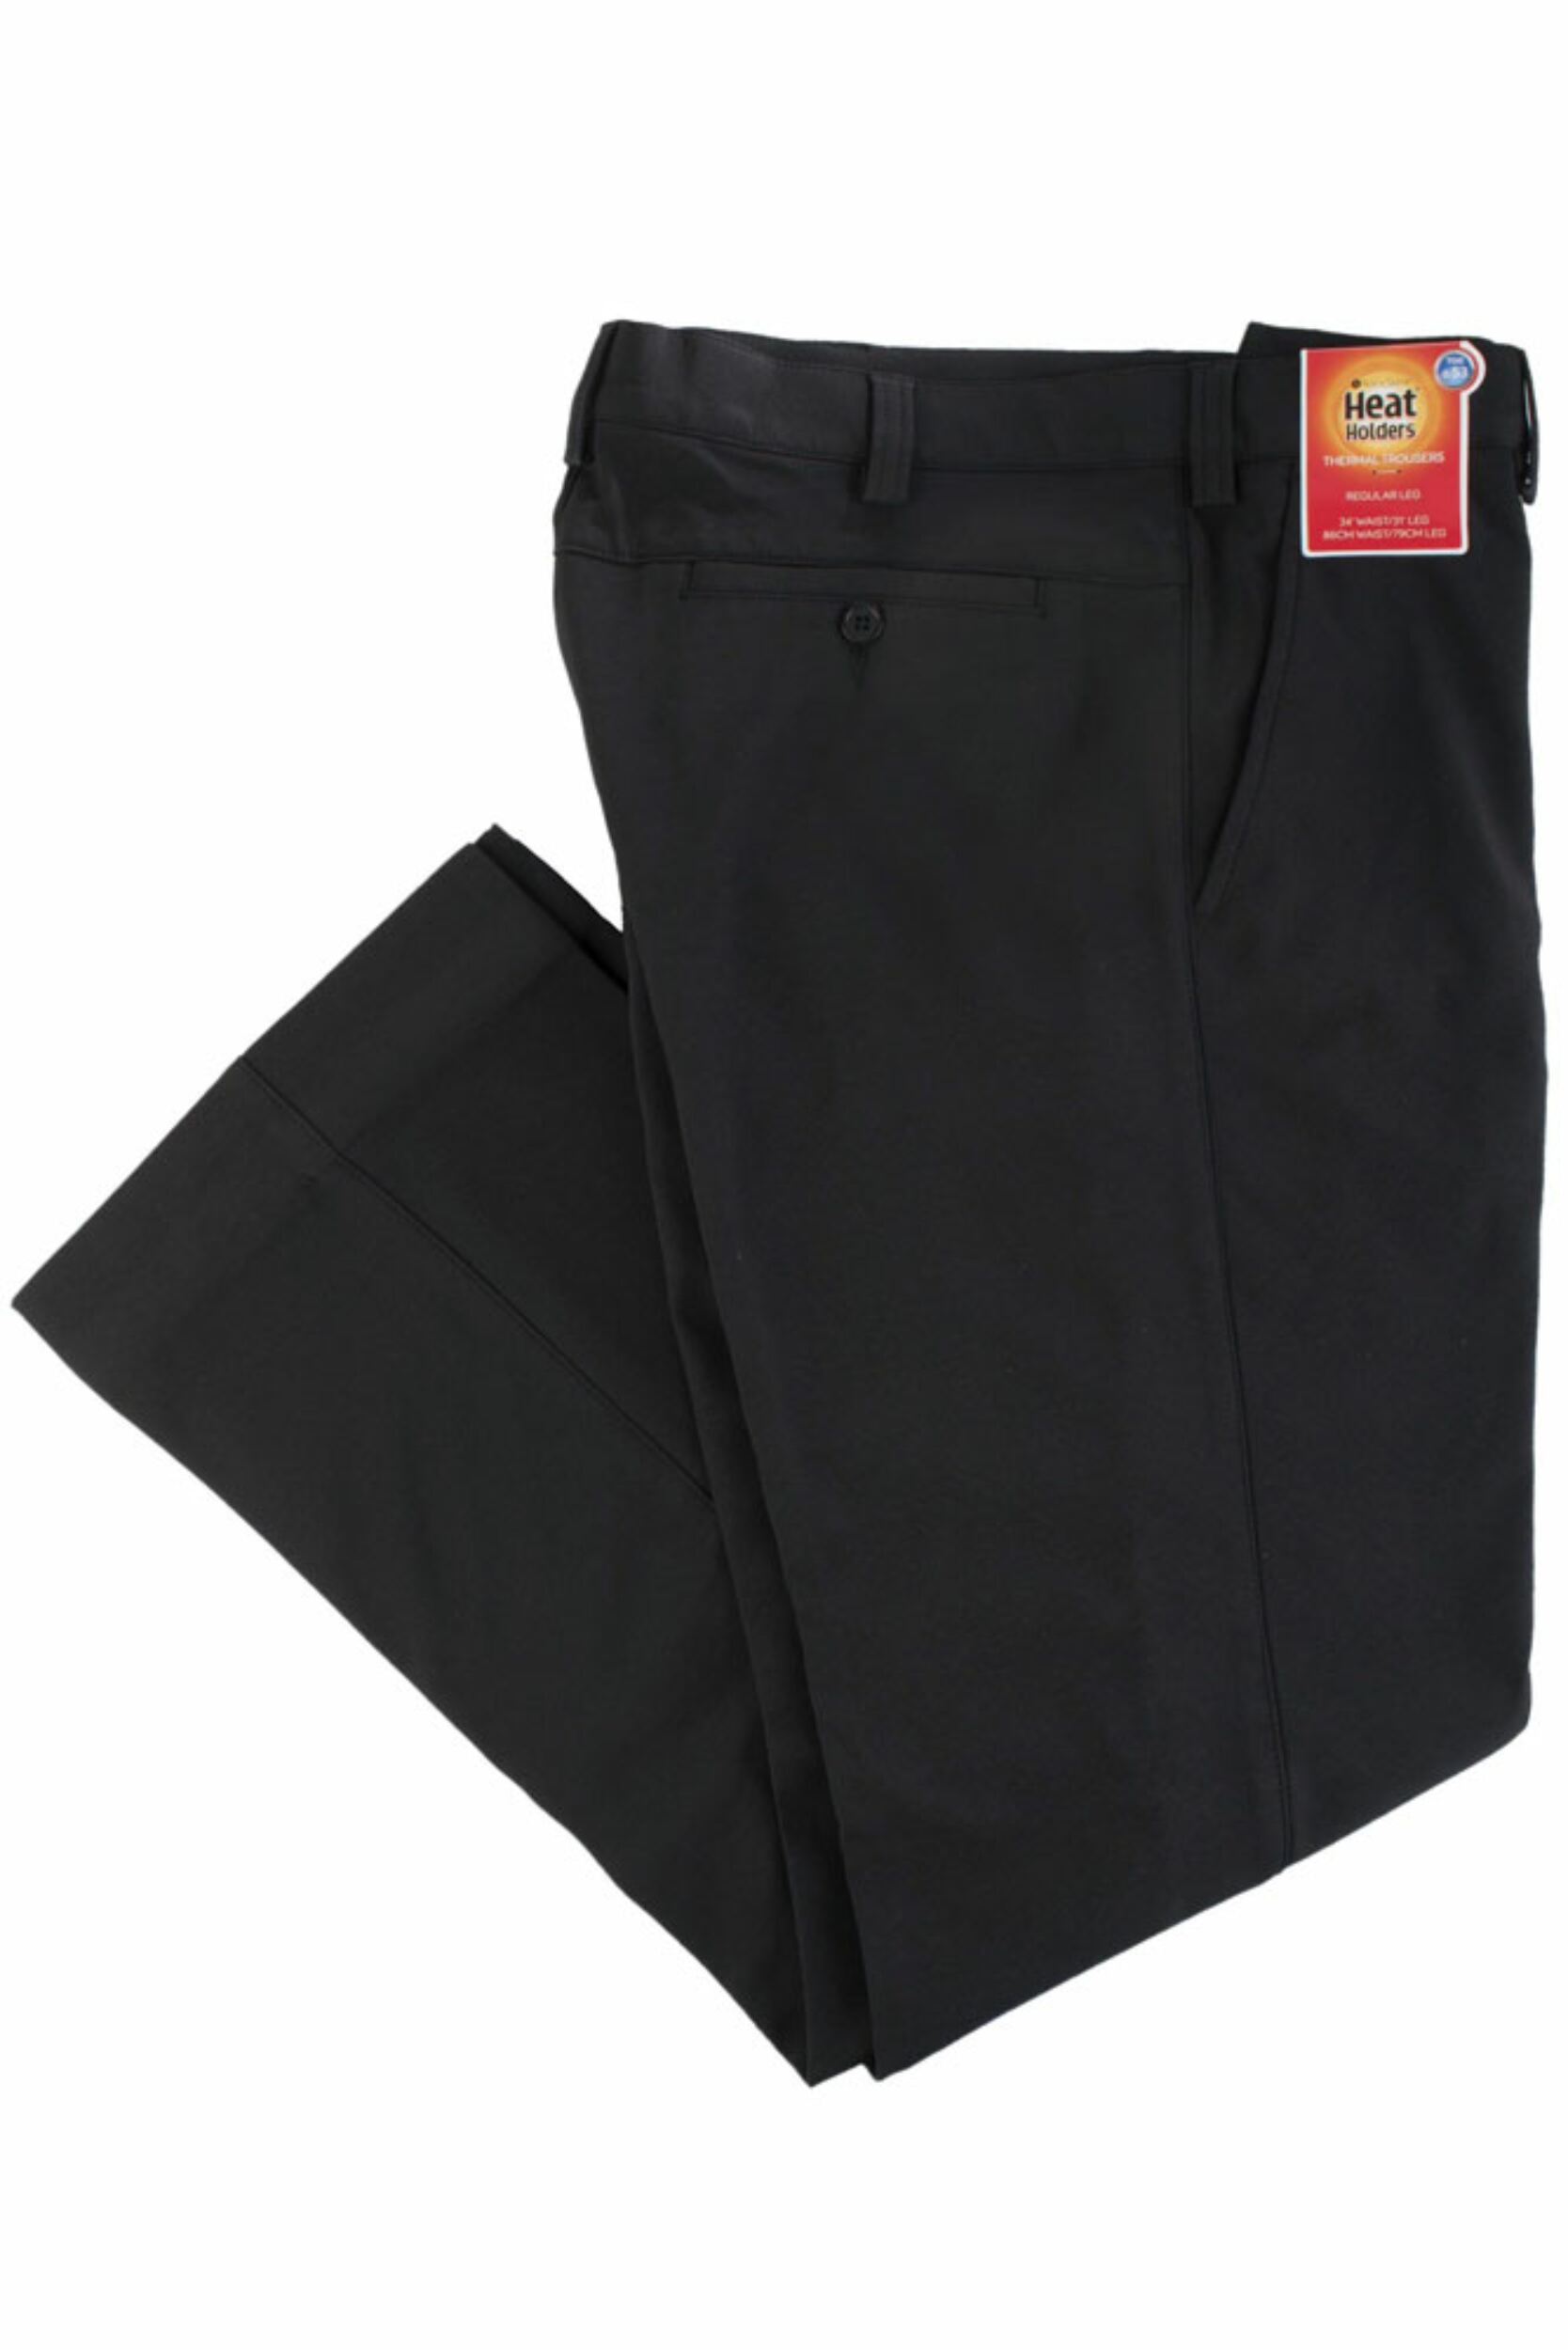 Image of 1 Pack Black 0.53 TOG Thermal Trousers Men's W36 L31 - Heat Holders